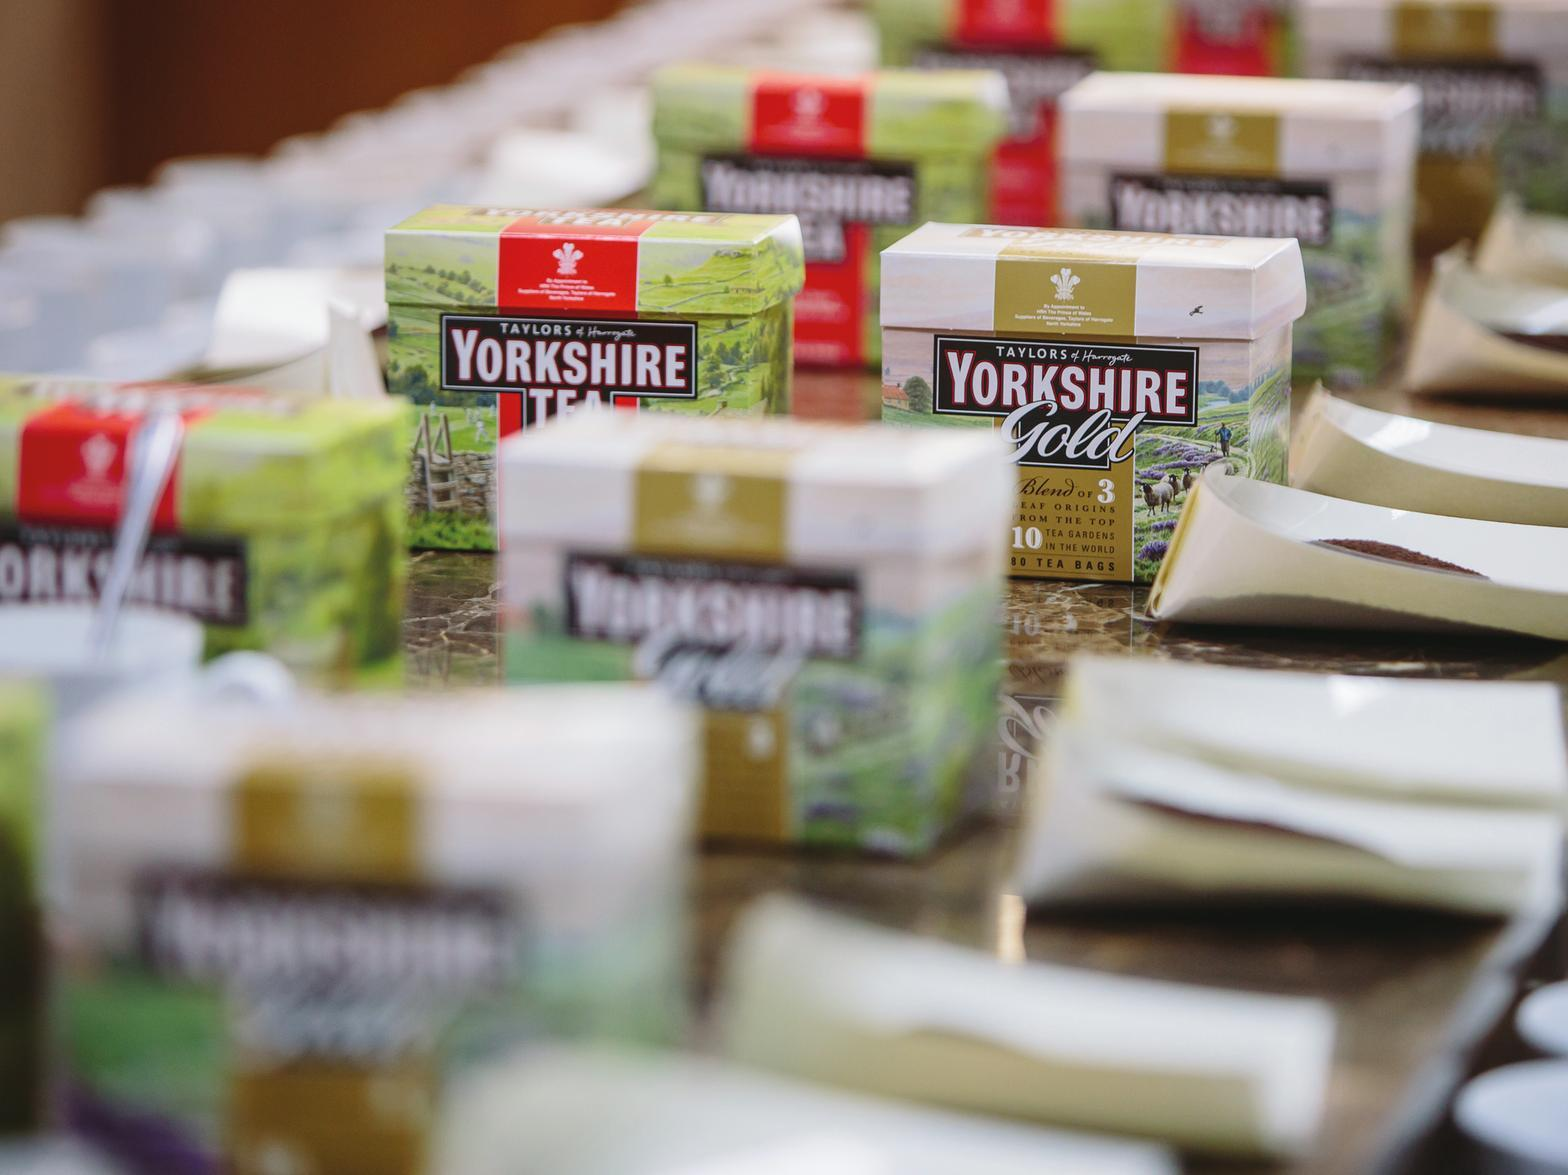 Harrogate's Yorkshire Tea up against PG Tips in television battle of the brews